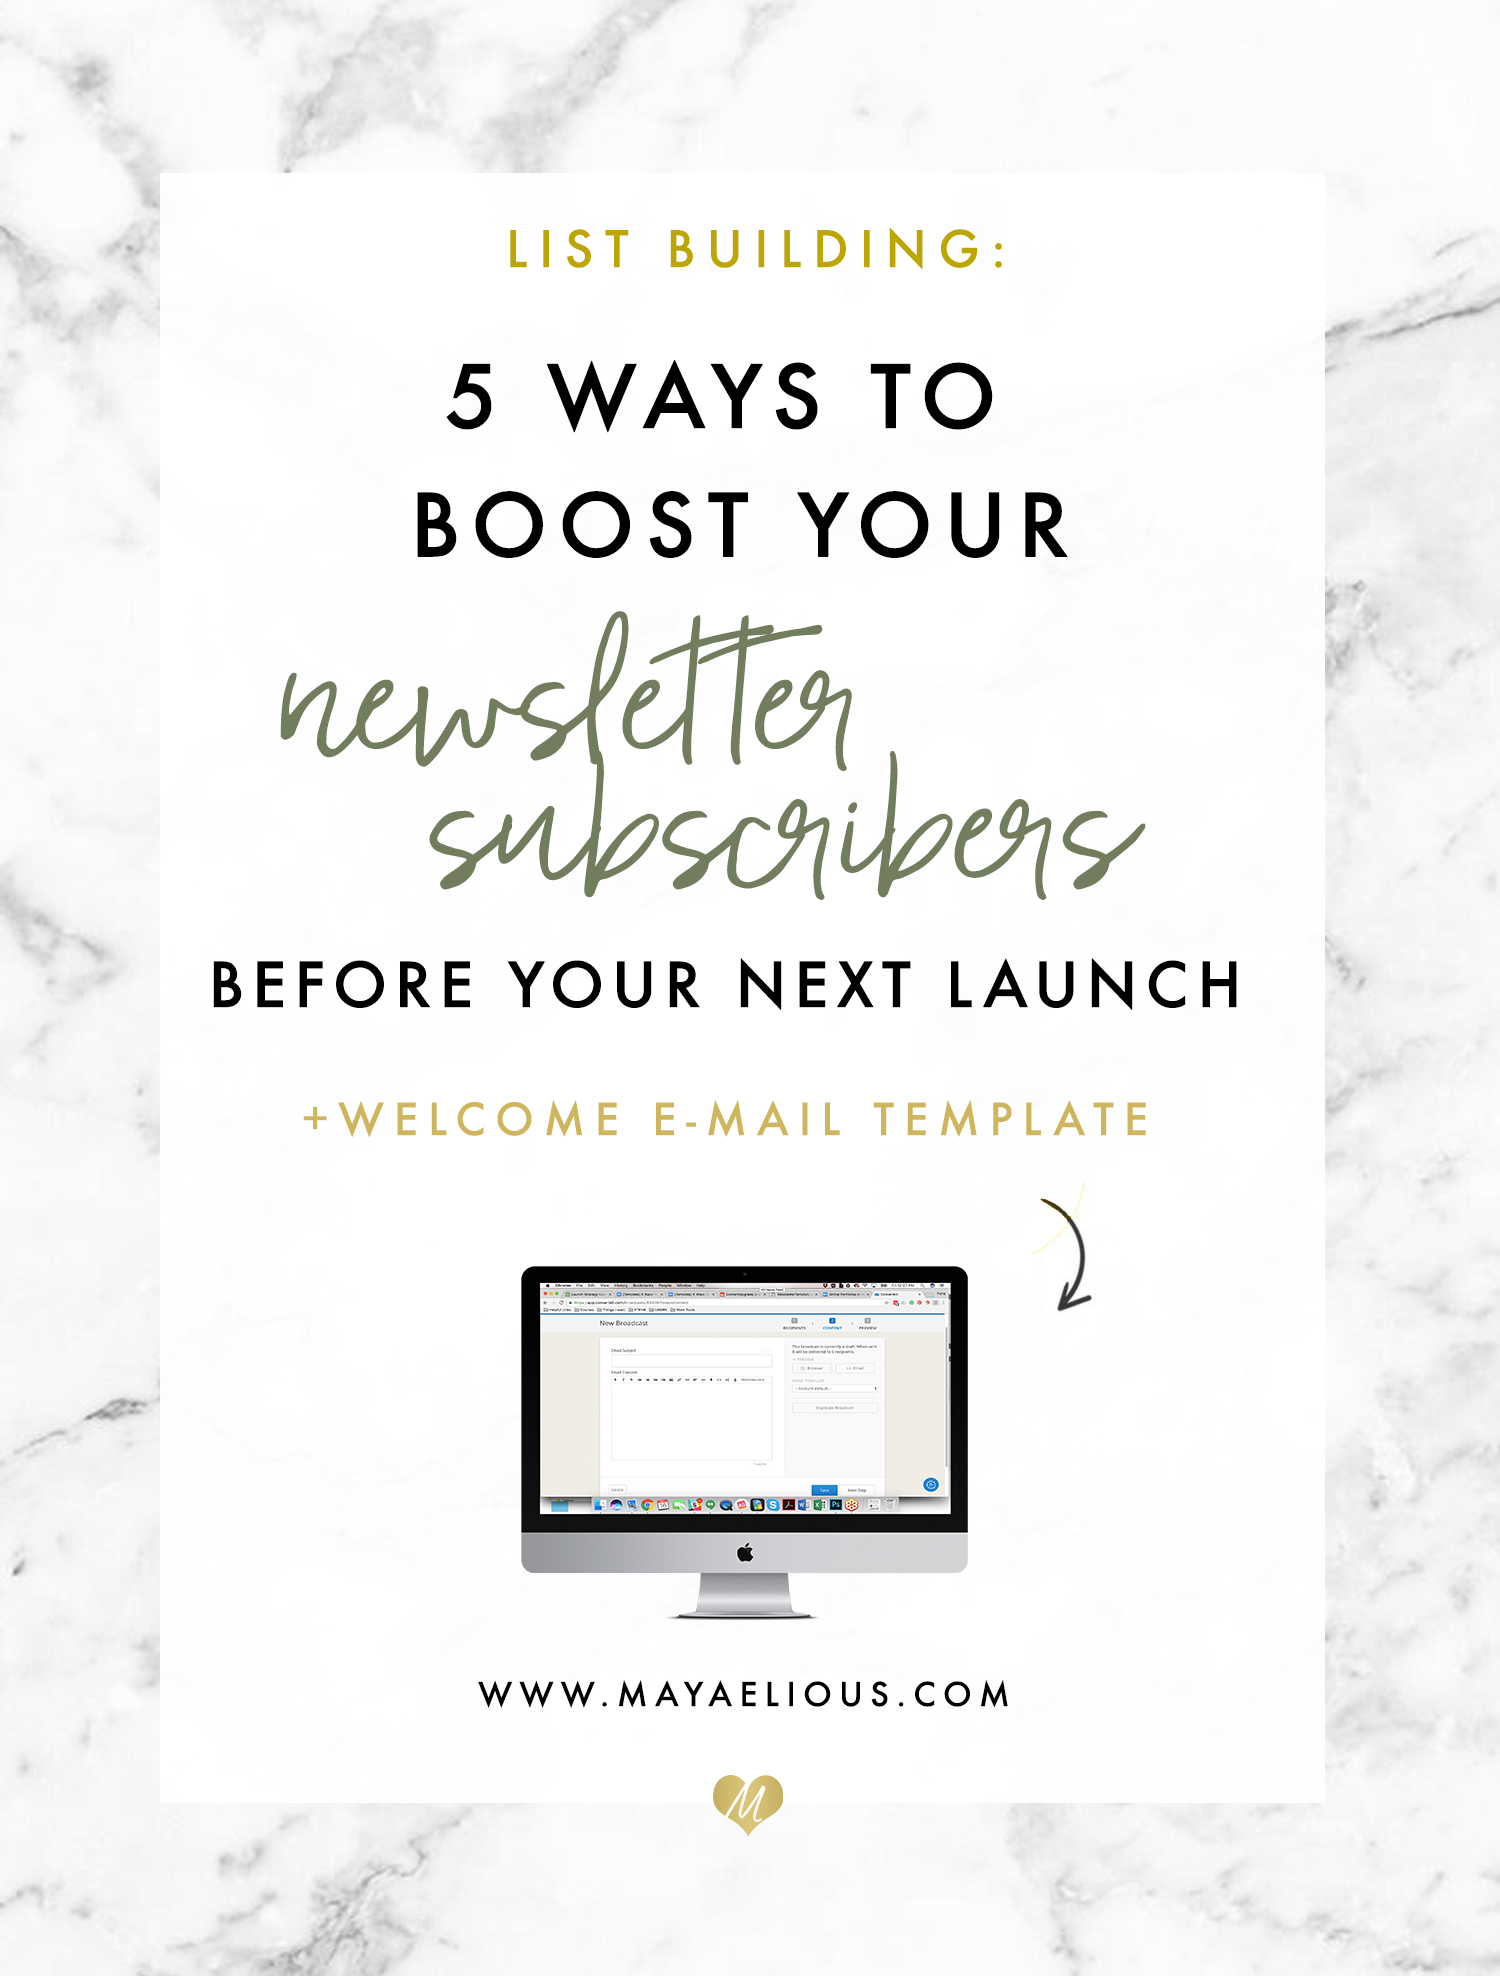 5 Ways To Boost Your Newsletter Subscribers For Your Next Launch